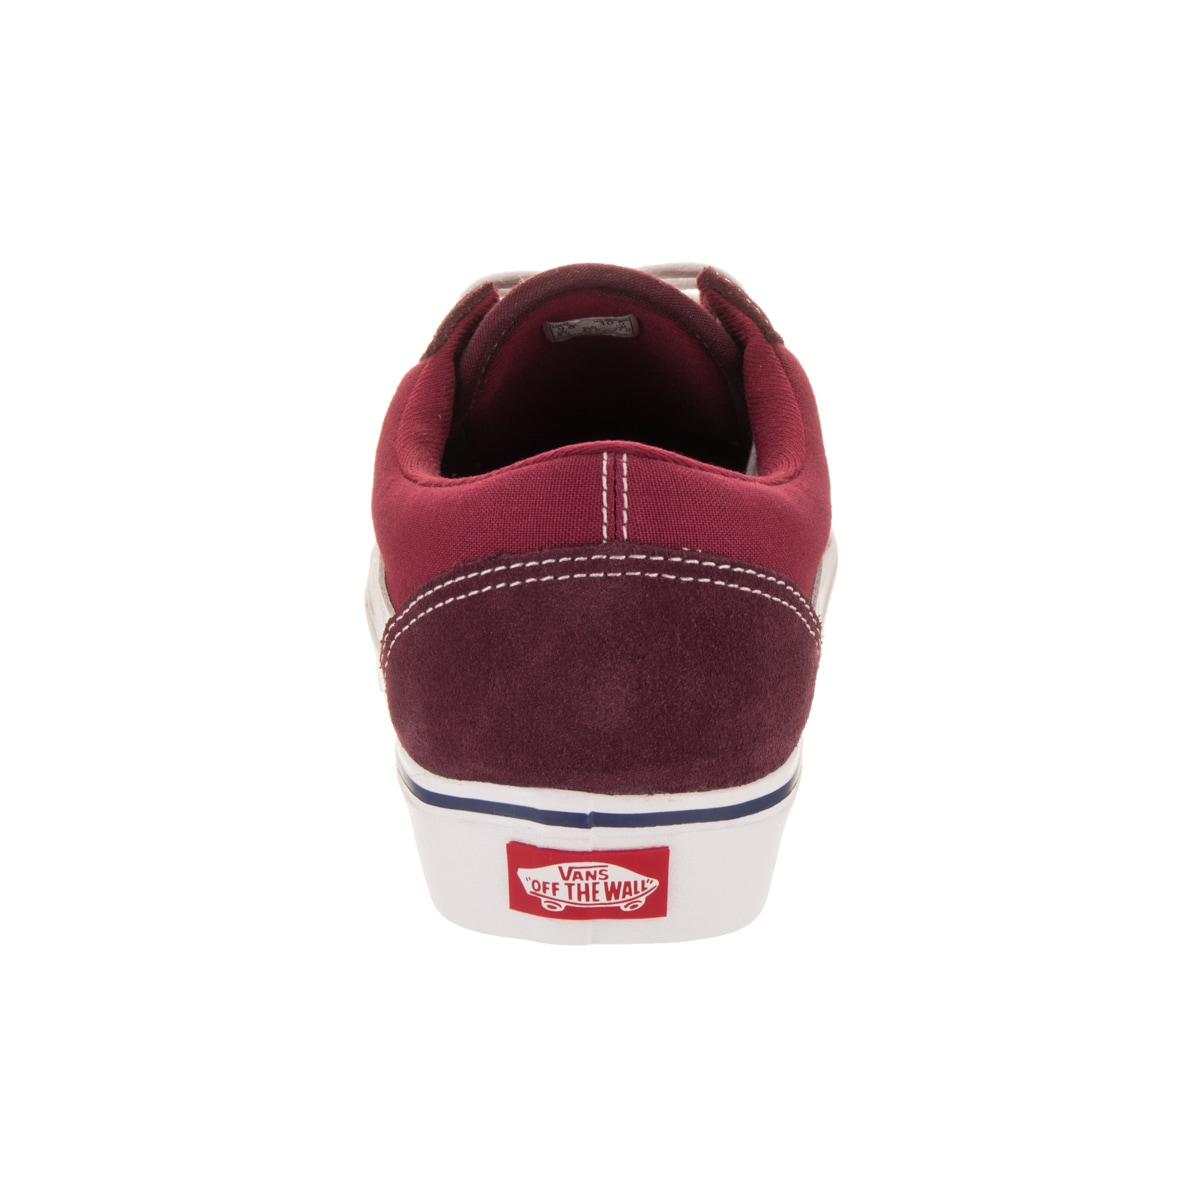 90ce55bec6 Shop Vans Unisex Old Skool Lite (Throwback) Skate Shoe - Free Shipping  Today - Overstock - 16739628